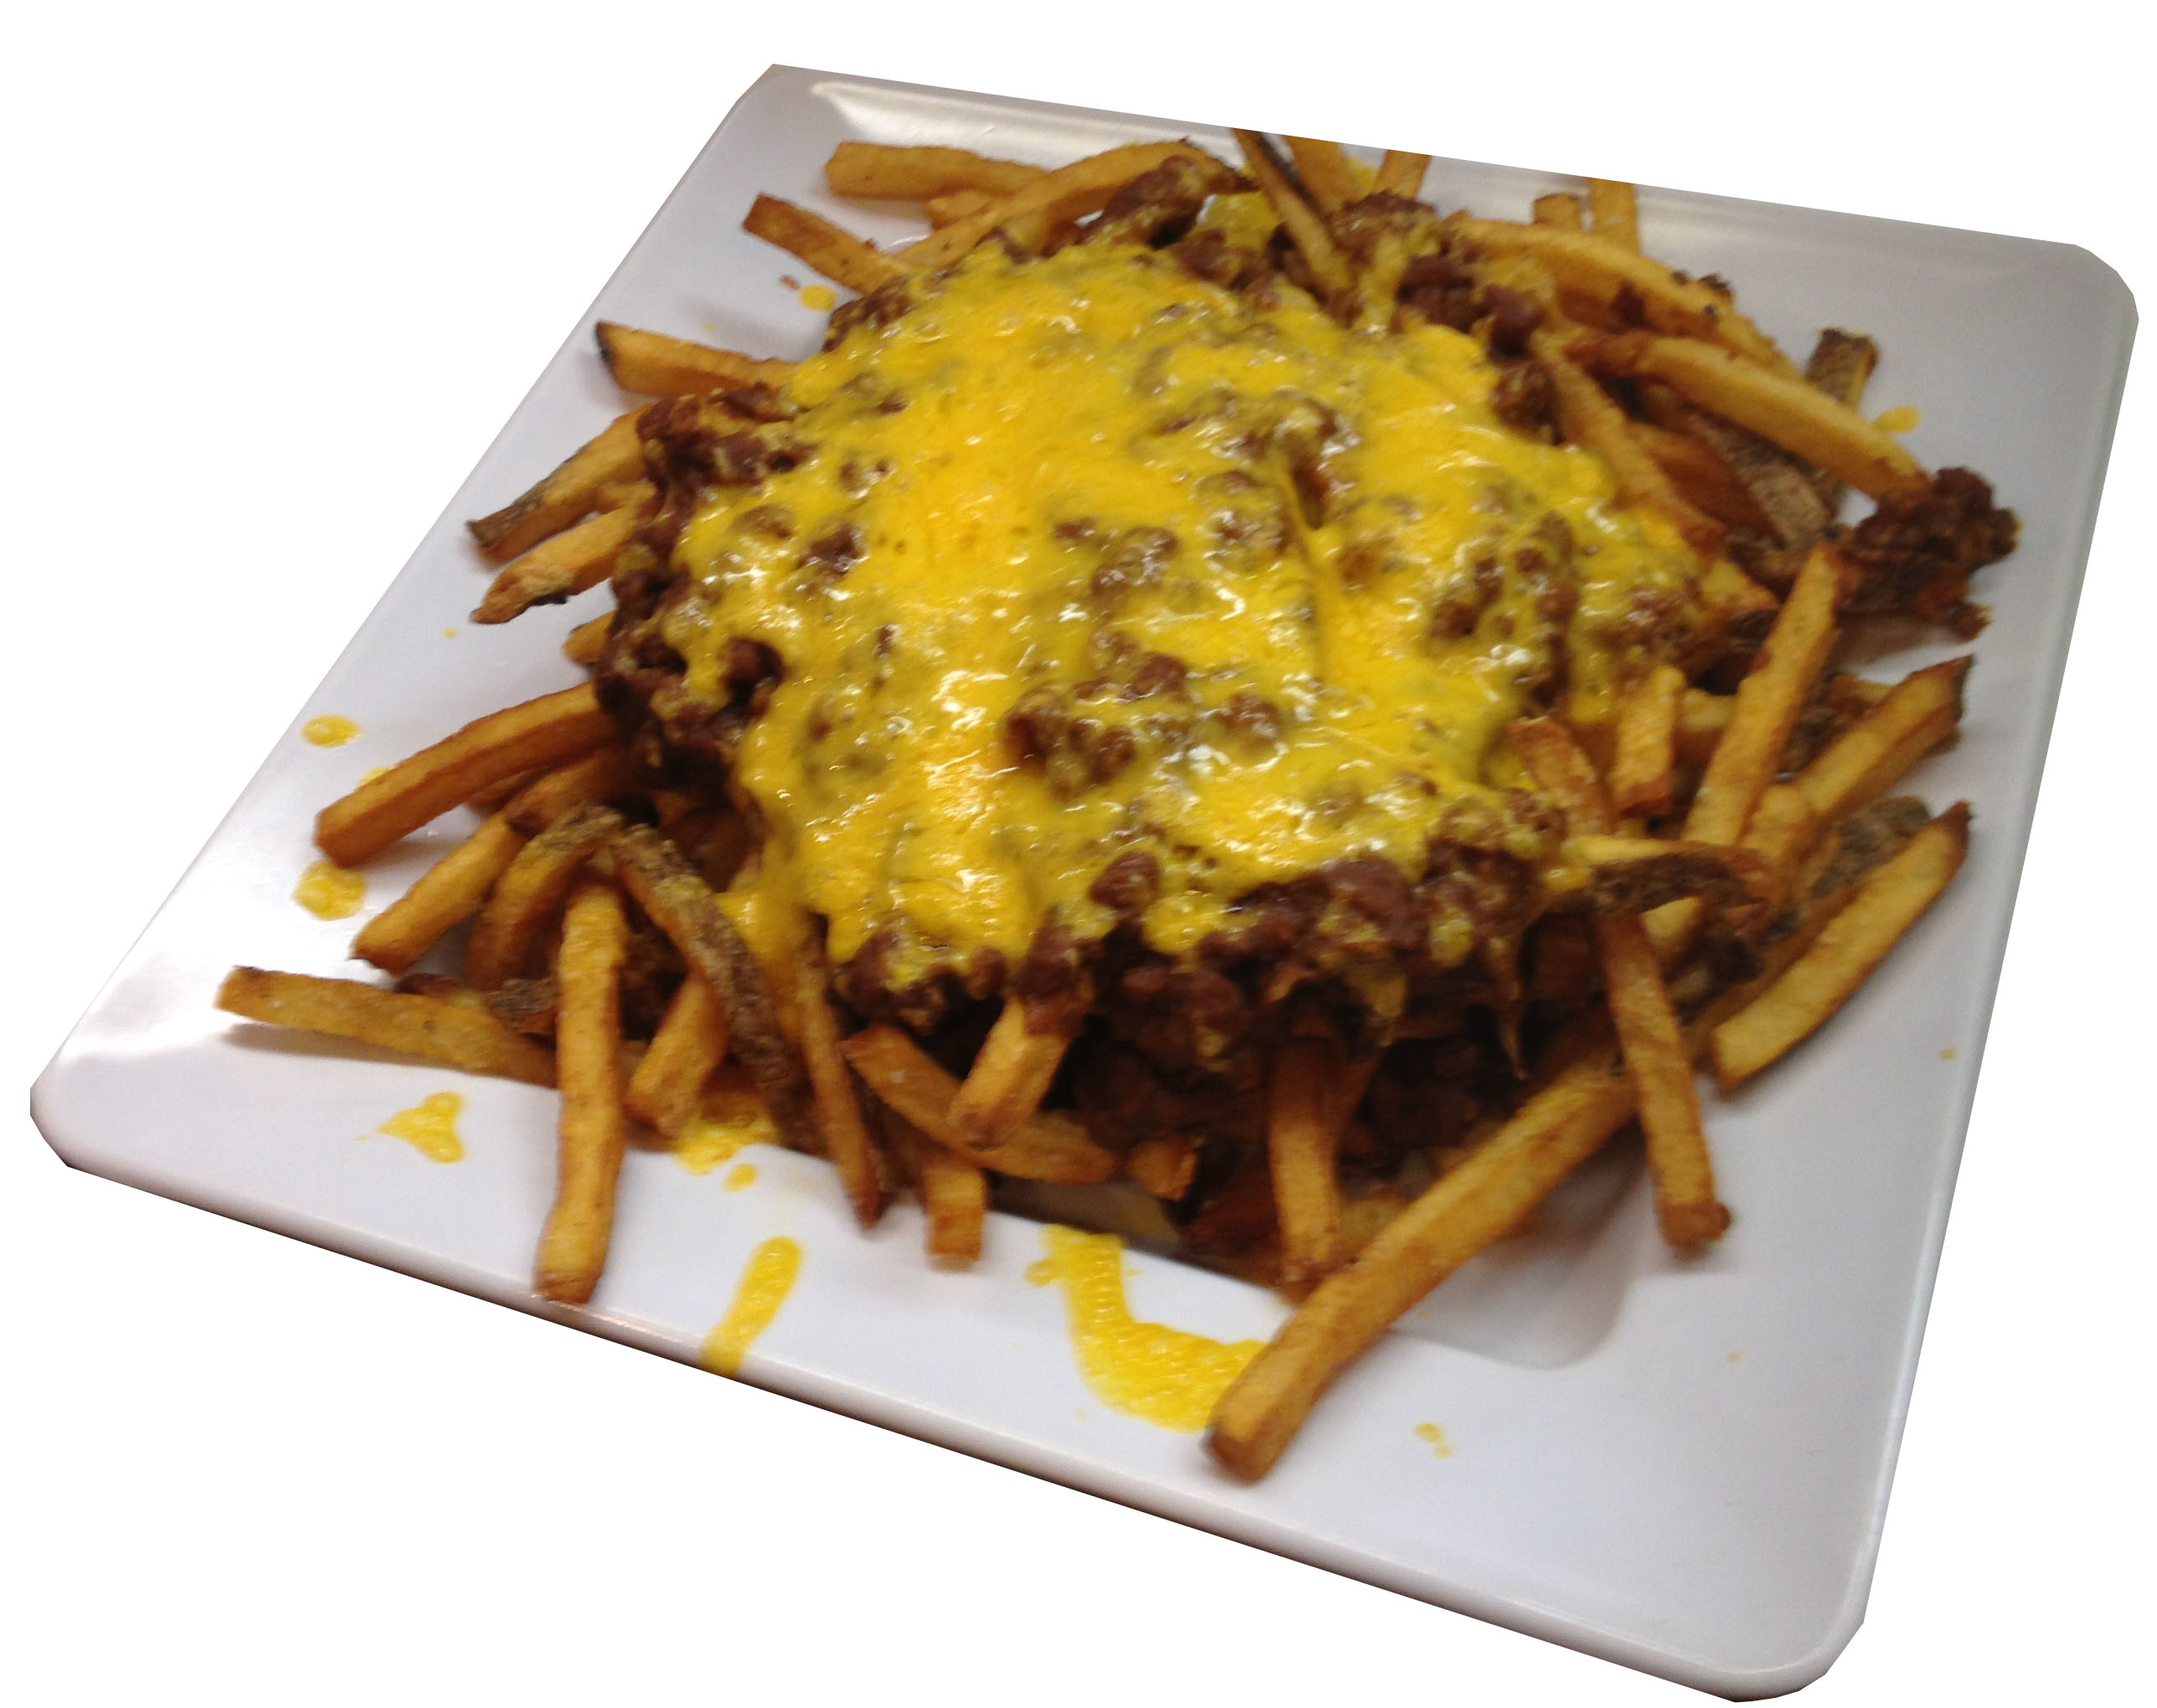 Chili Cheese Fries Image